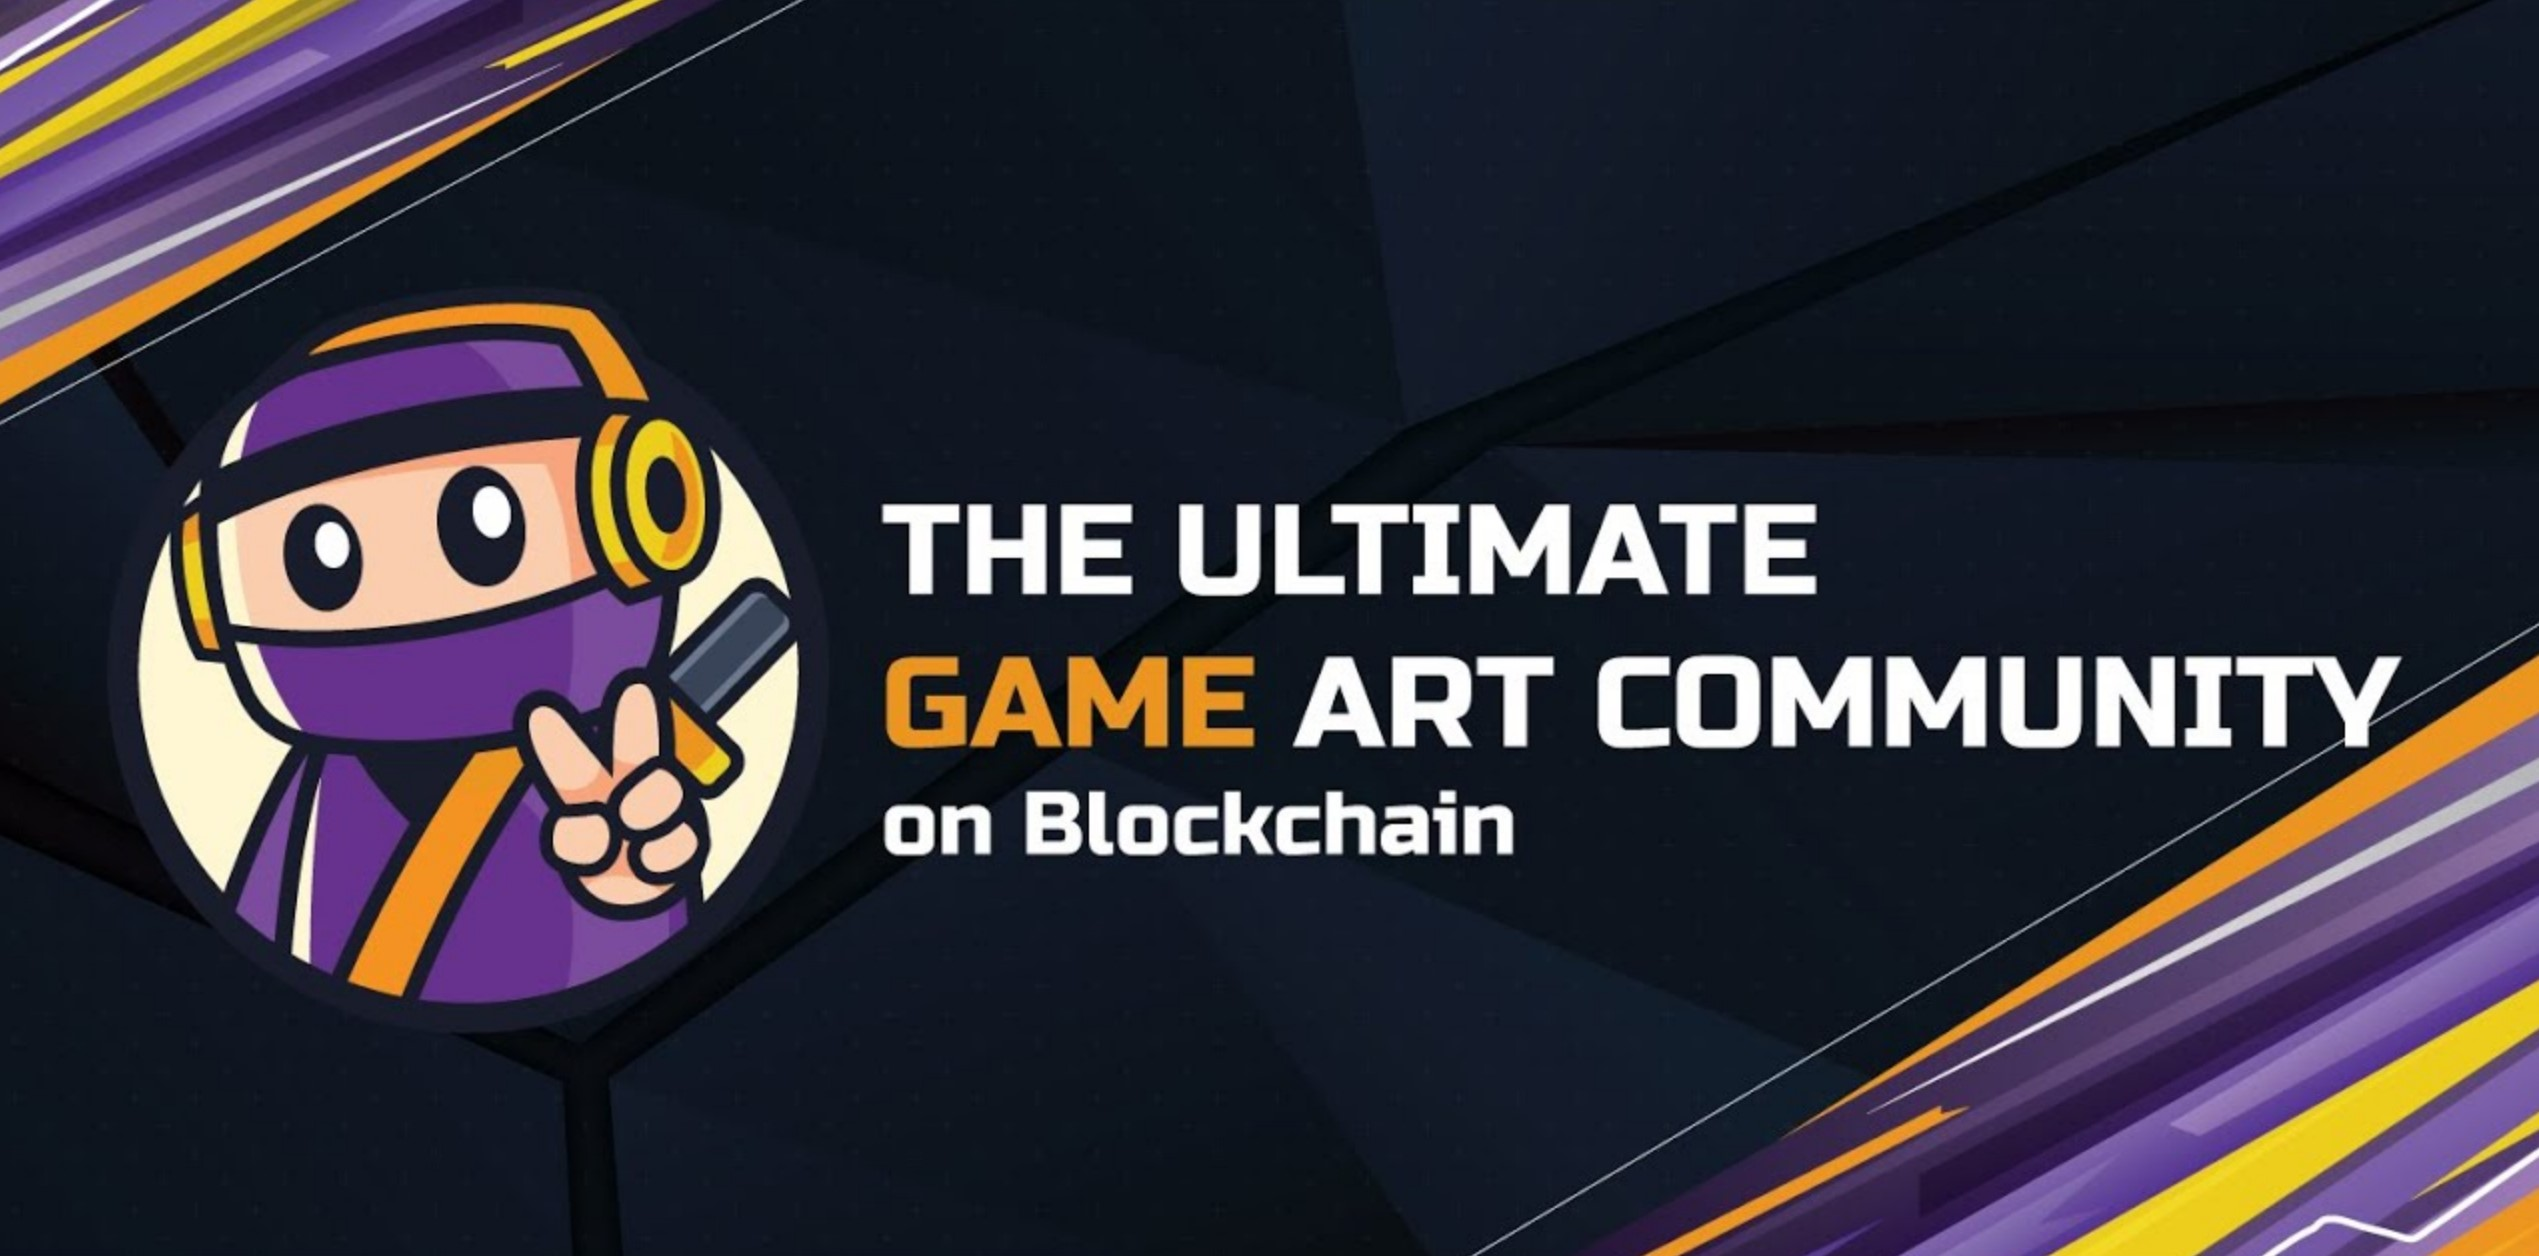 Ulti Arena is a NFT Marketplace and Community of Game Artists, Developers and Players